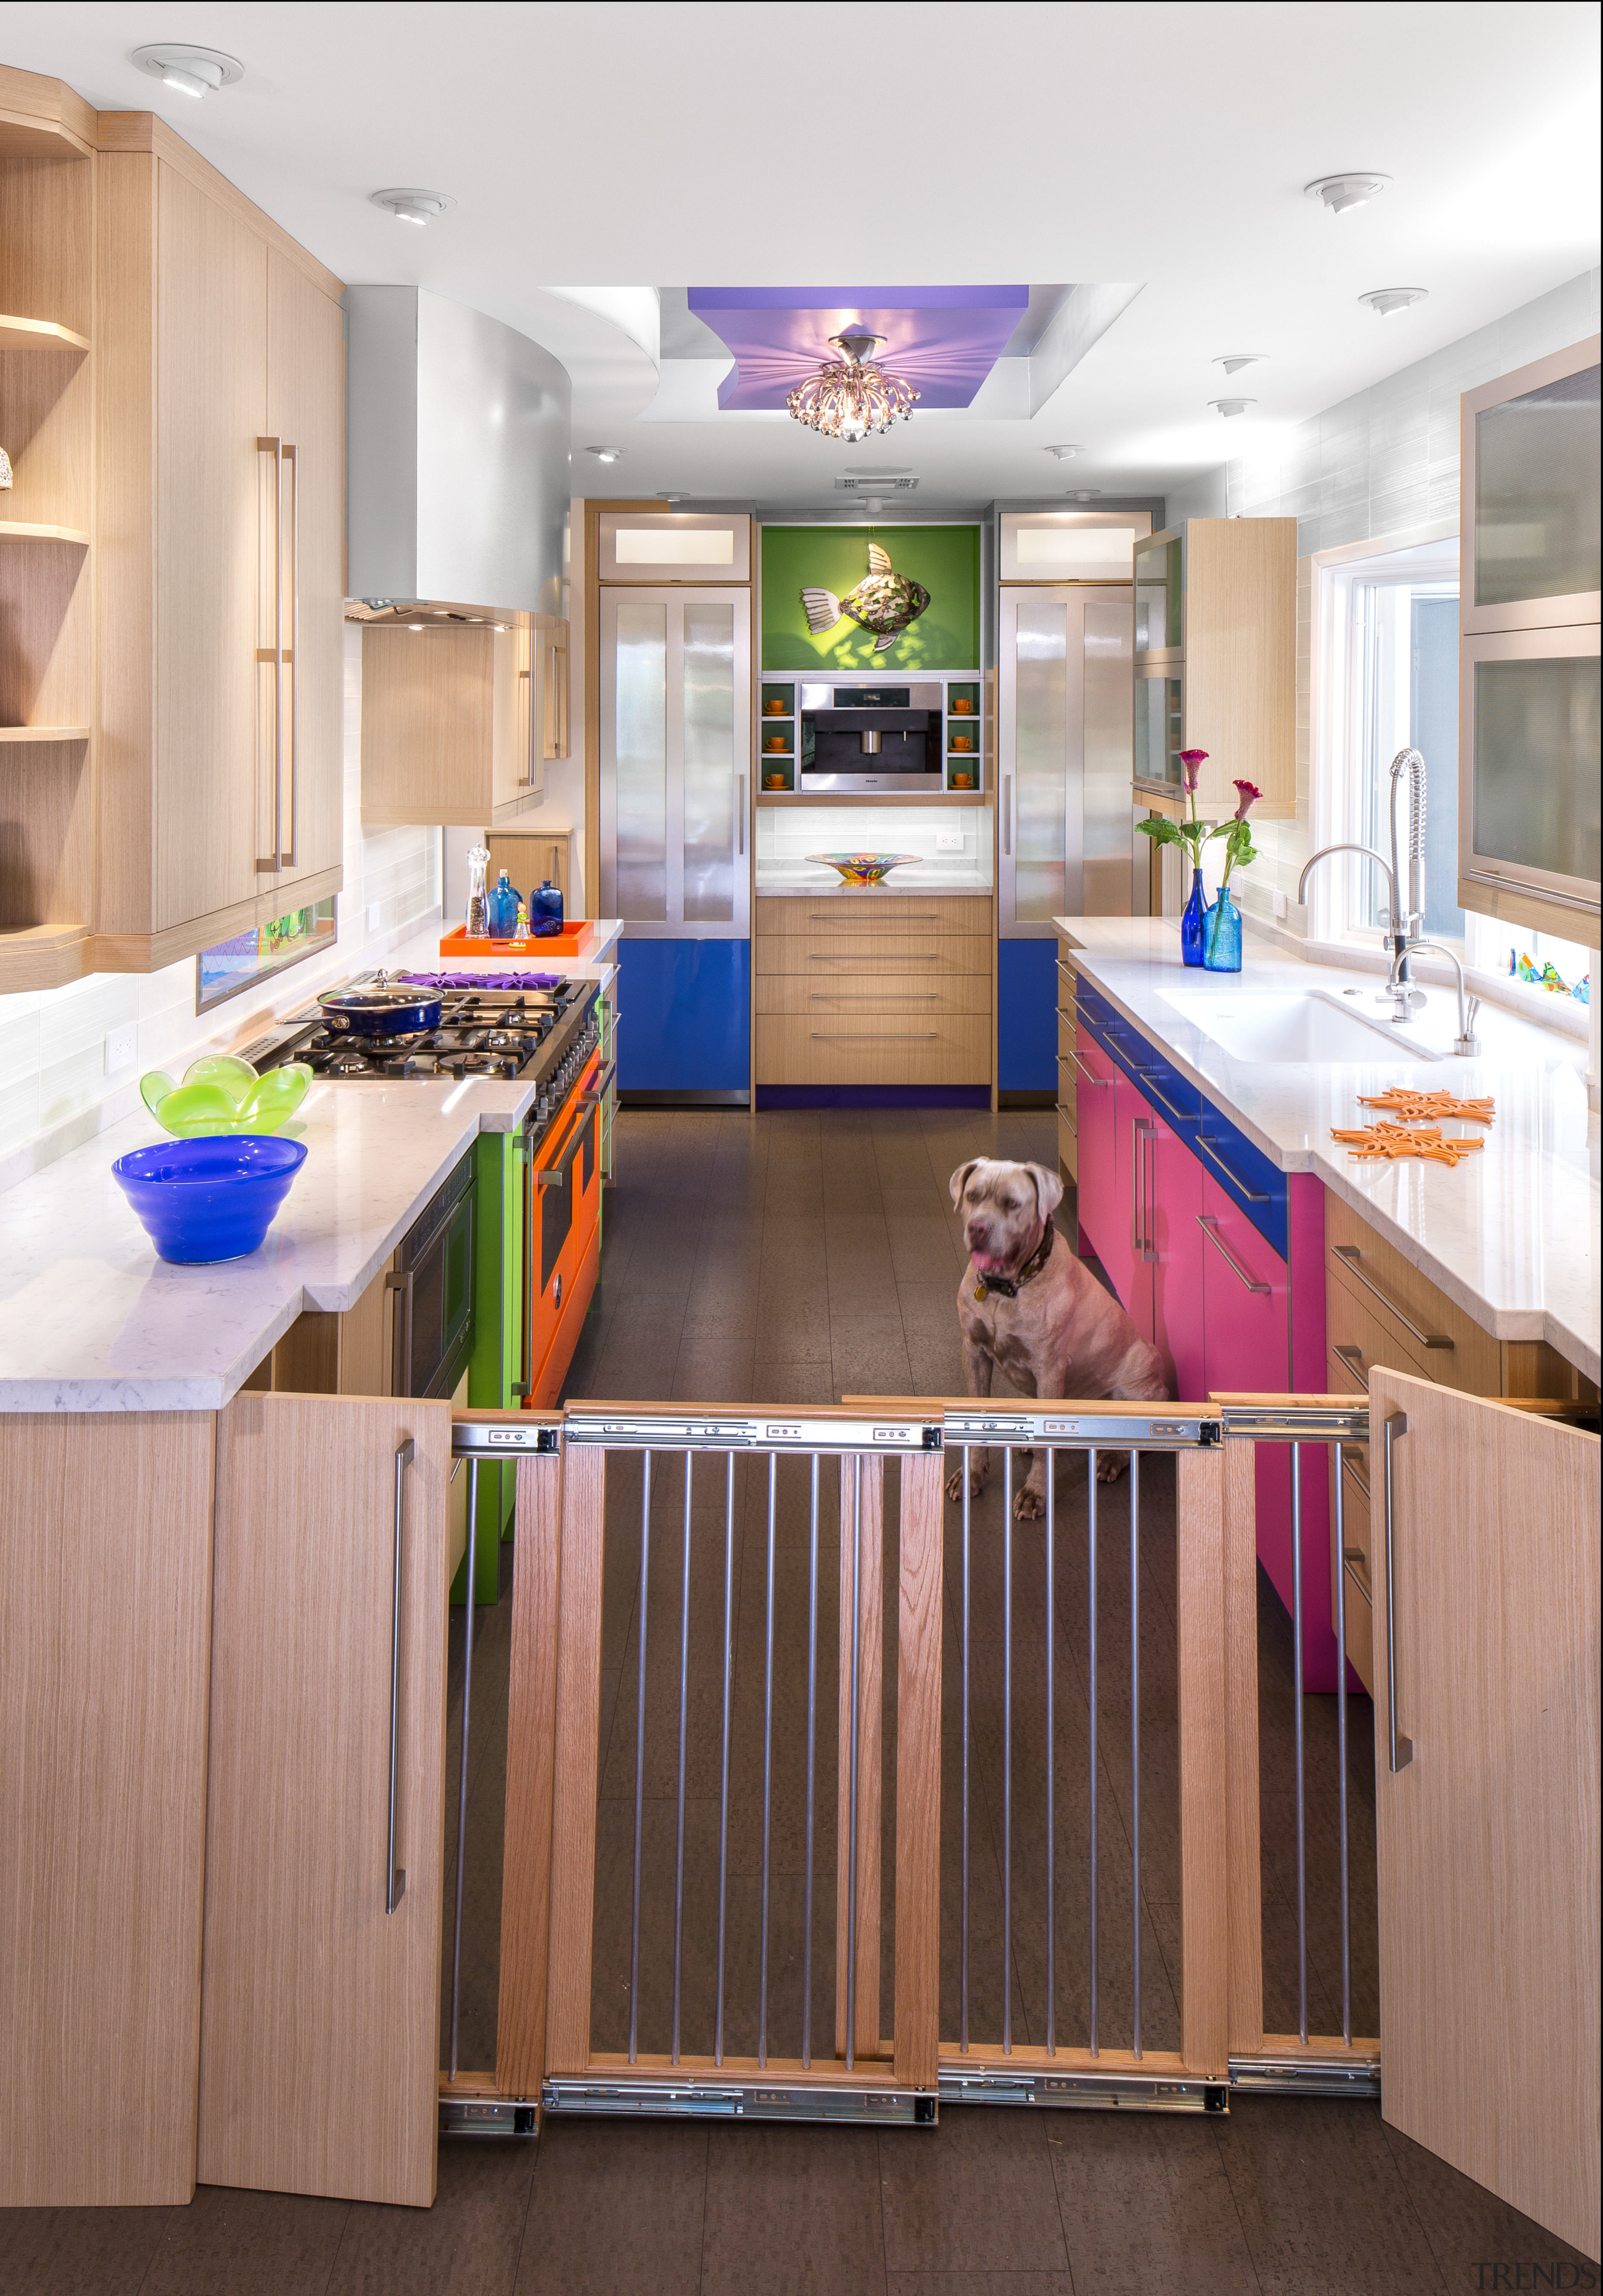 This colorful kitchen by Elina Katsioula-Beall features a cabinetry, countertop, floor, interior design, kitchen, room, white